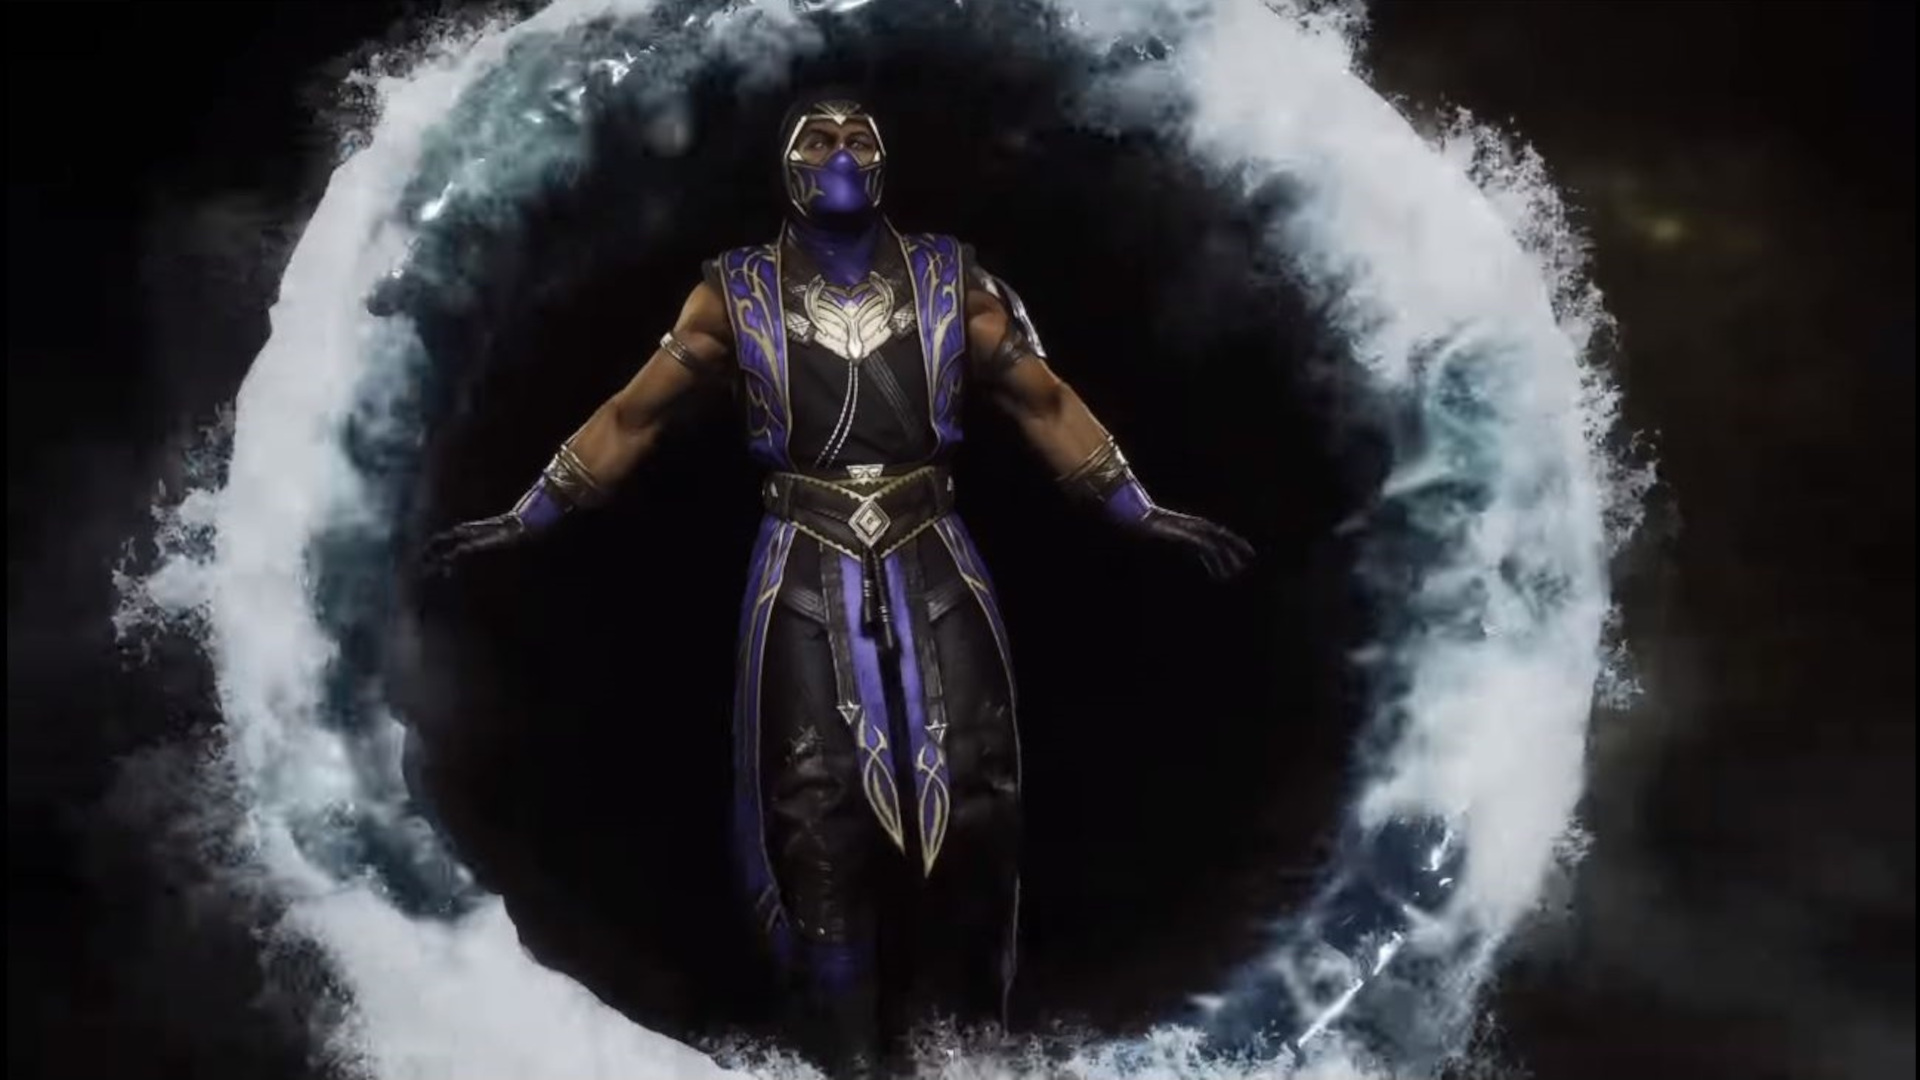 Mortal Kombat 11 Is Free To Play This Weekend On Xbox One